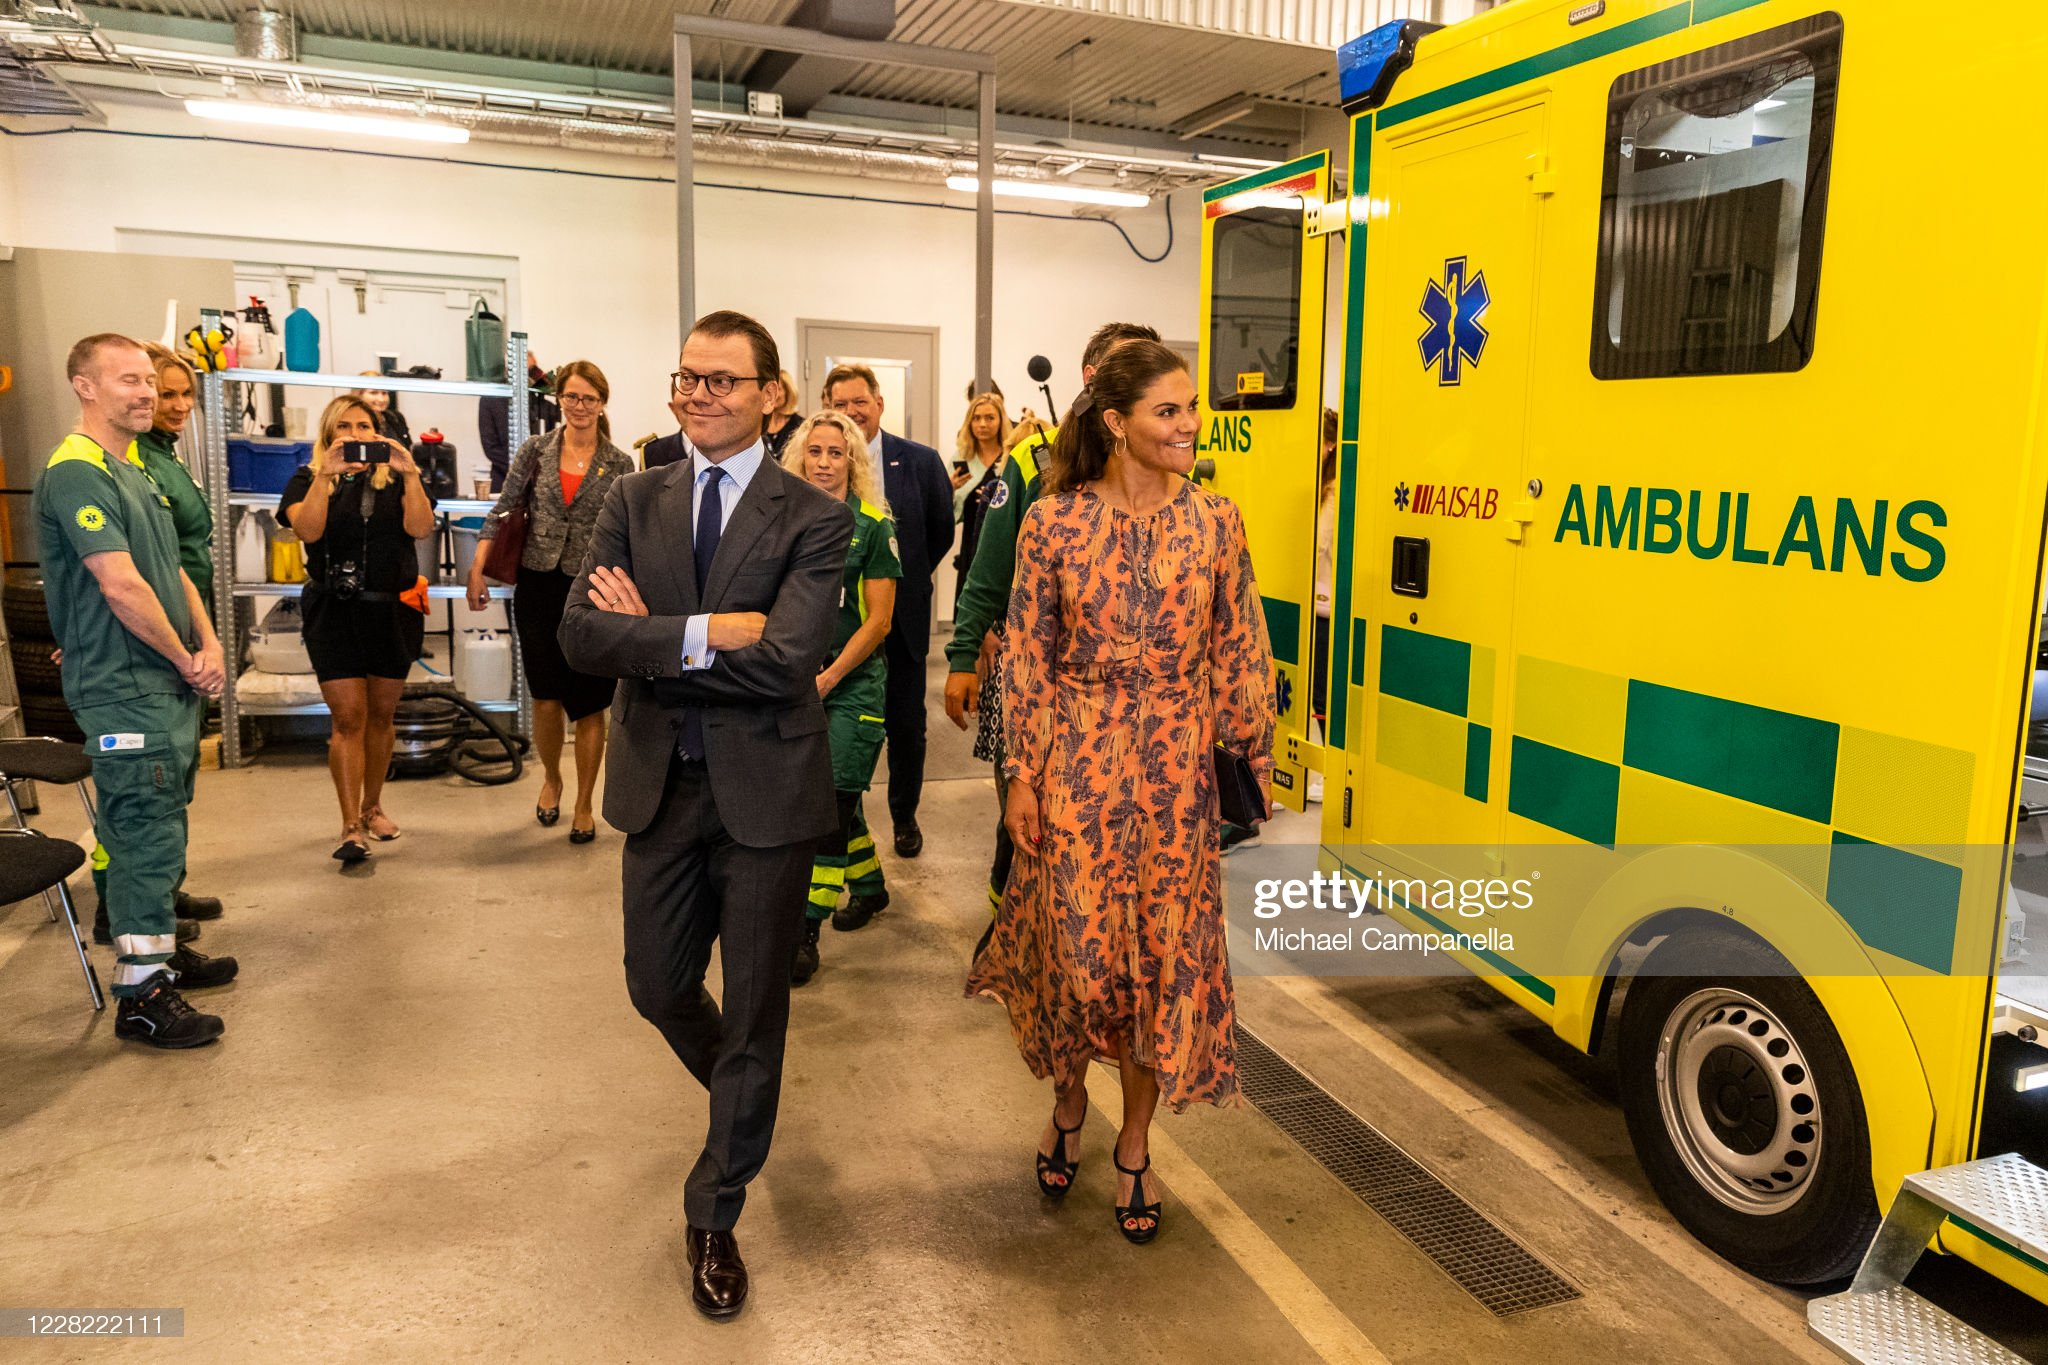 crown-princess-victoria-and-prince-daniel-of-sweden-visit-an-station-picture-id1228222111